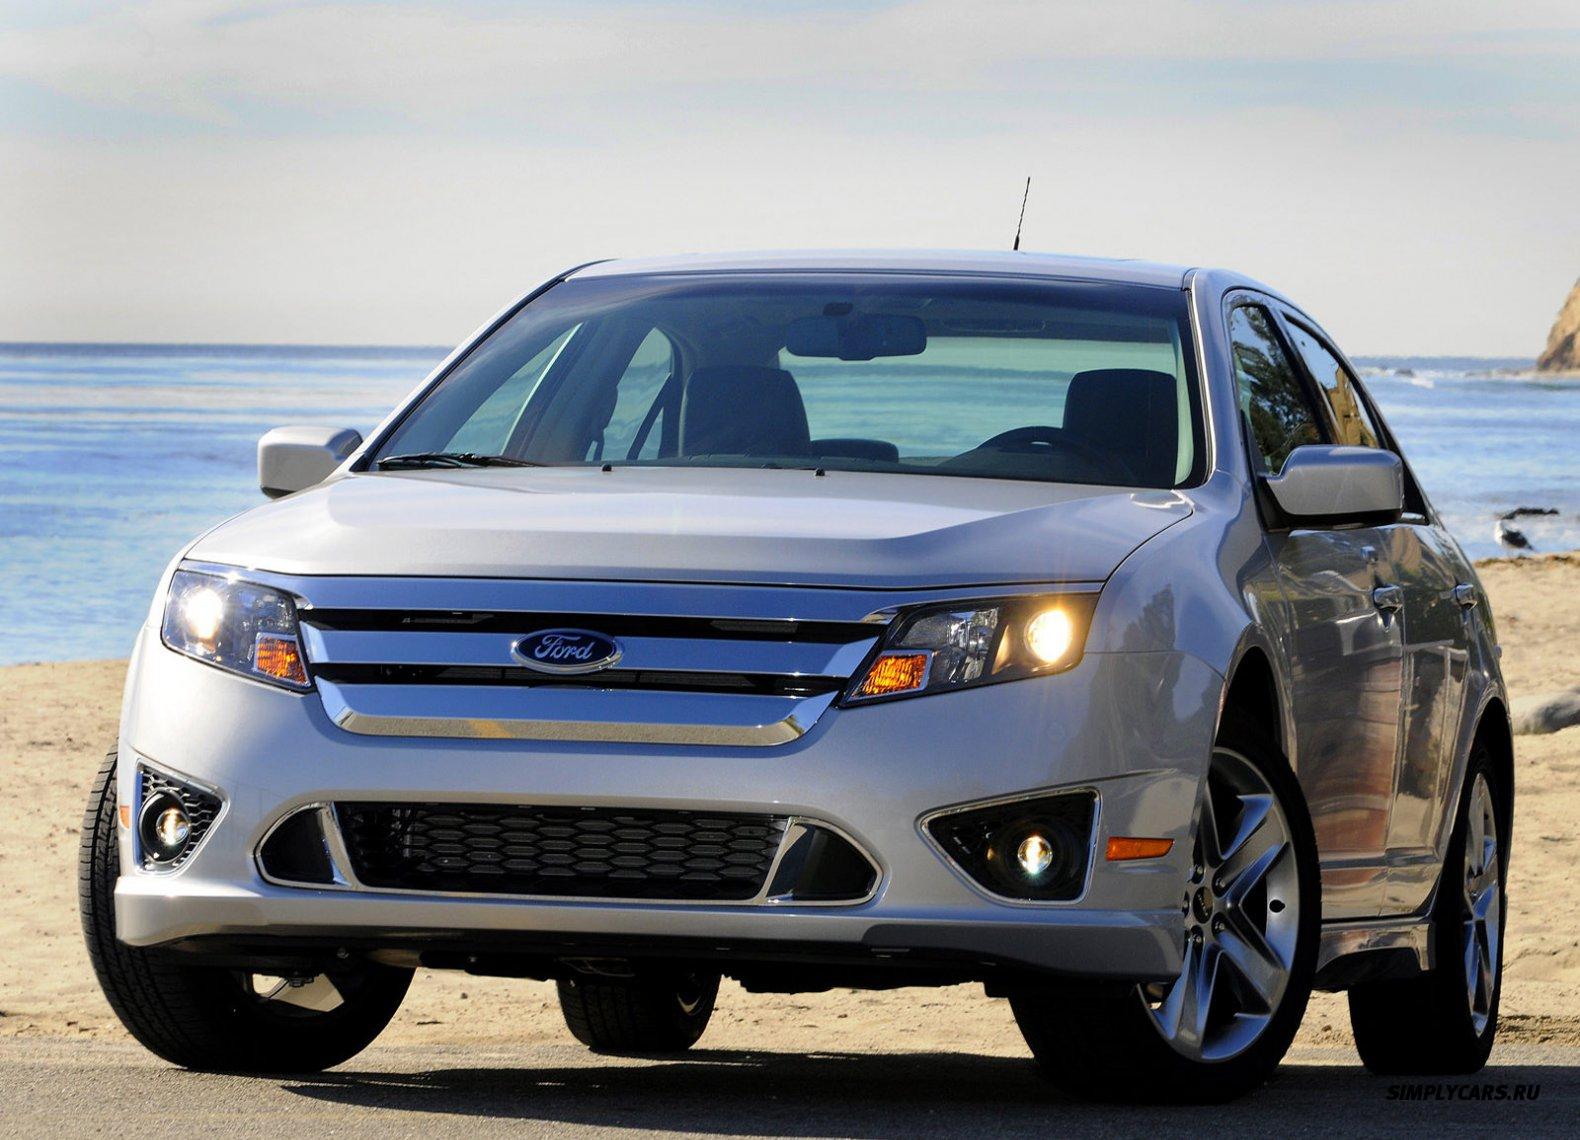 Ford cars list pictures Corpus Christi Wedding Photographers - Reviews for Photographers